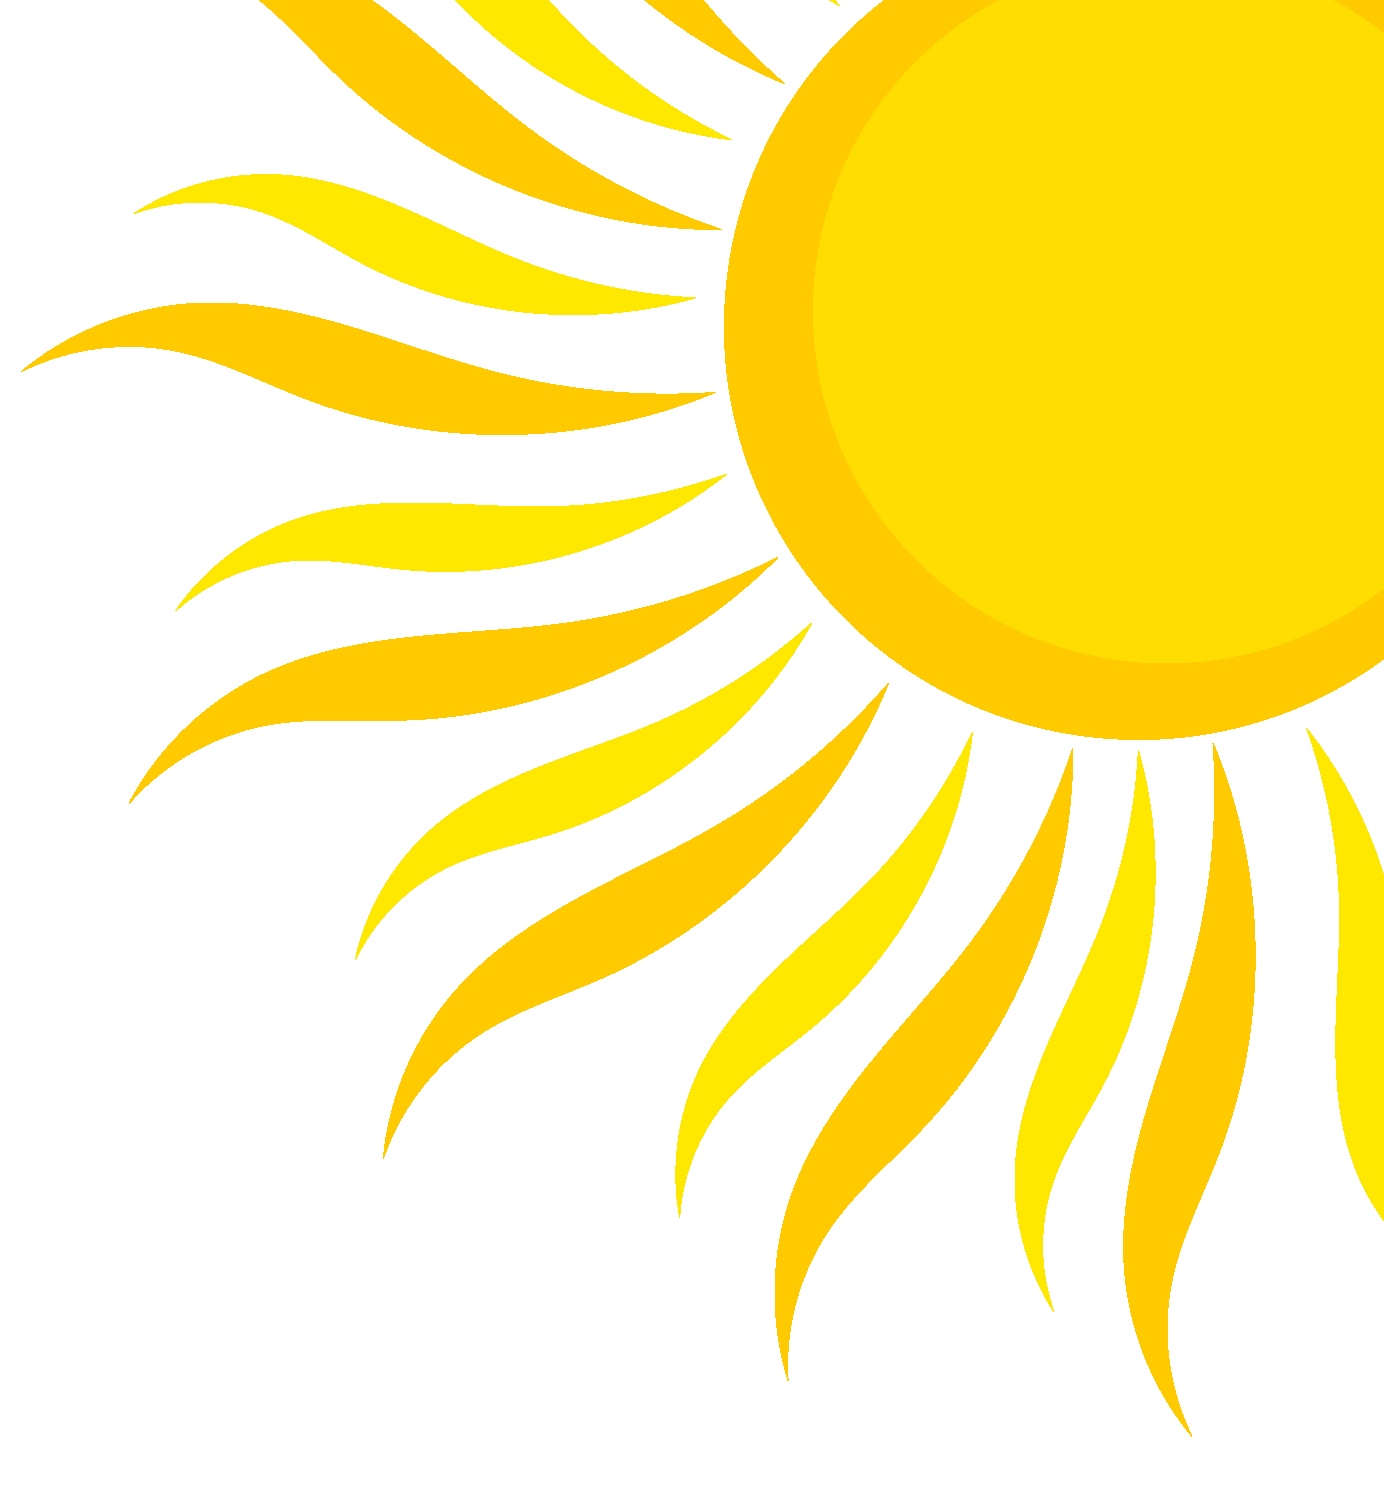 Summer sun png. Free icons and backgrounds